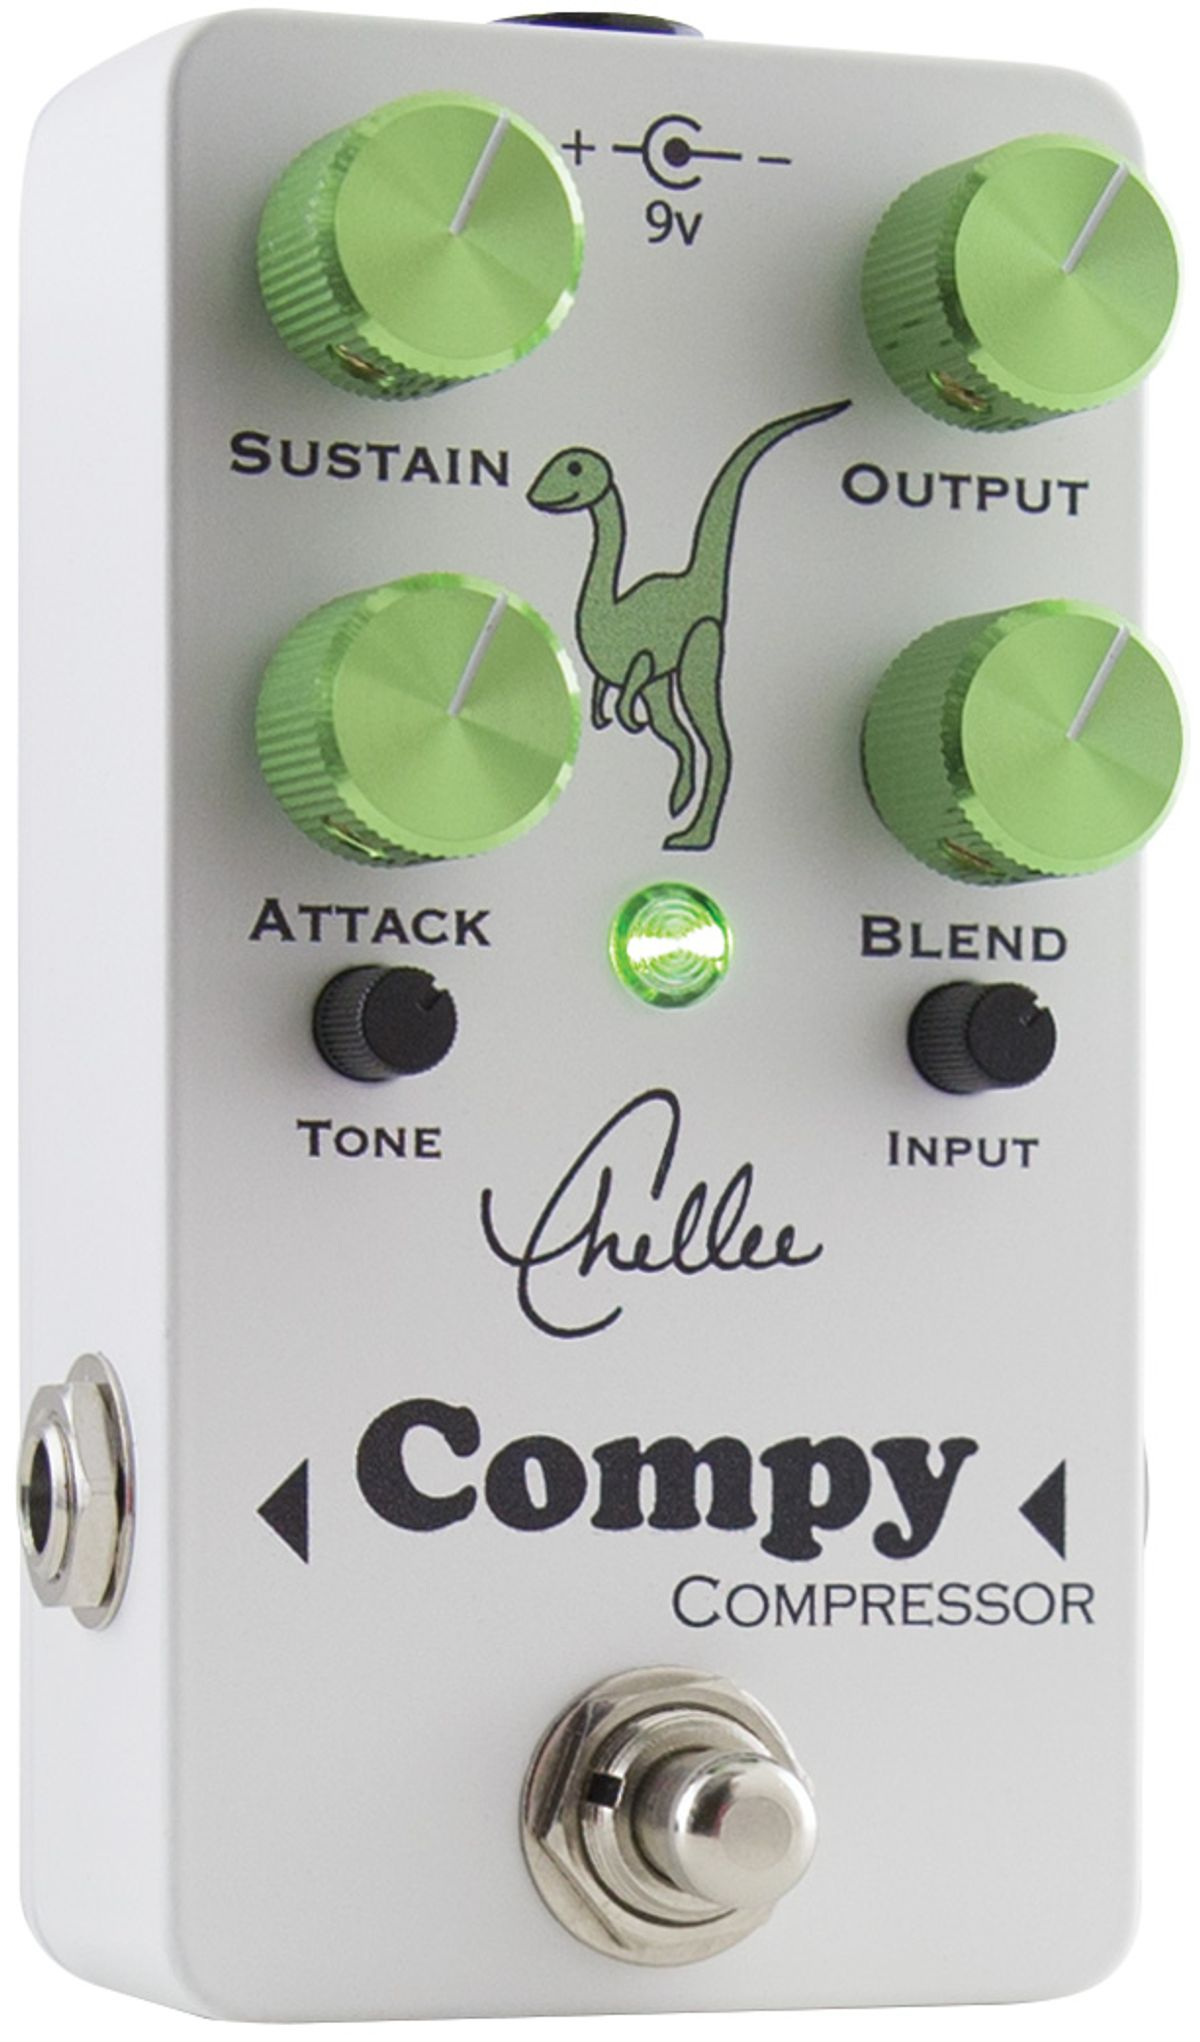 Chellee Compy Review